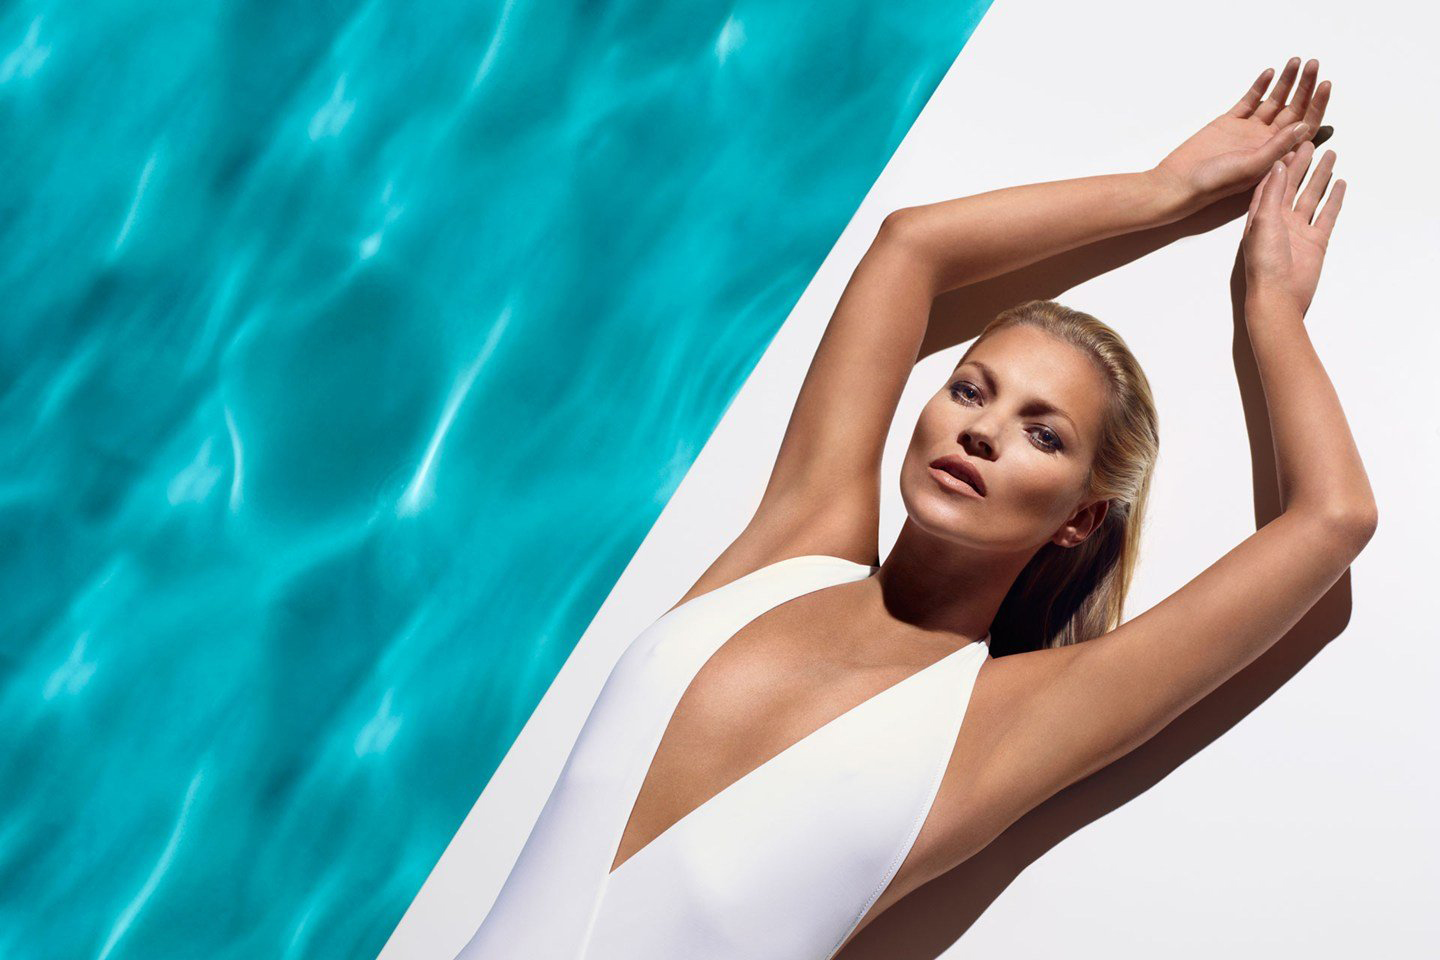 kate-moss-for-st-tropez-3-vogue-9may13-pr_b_1440x960